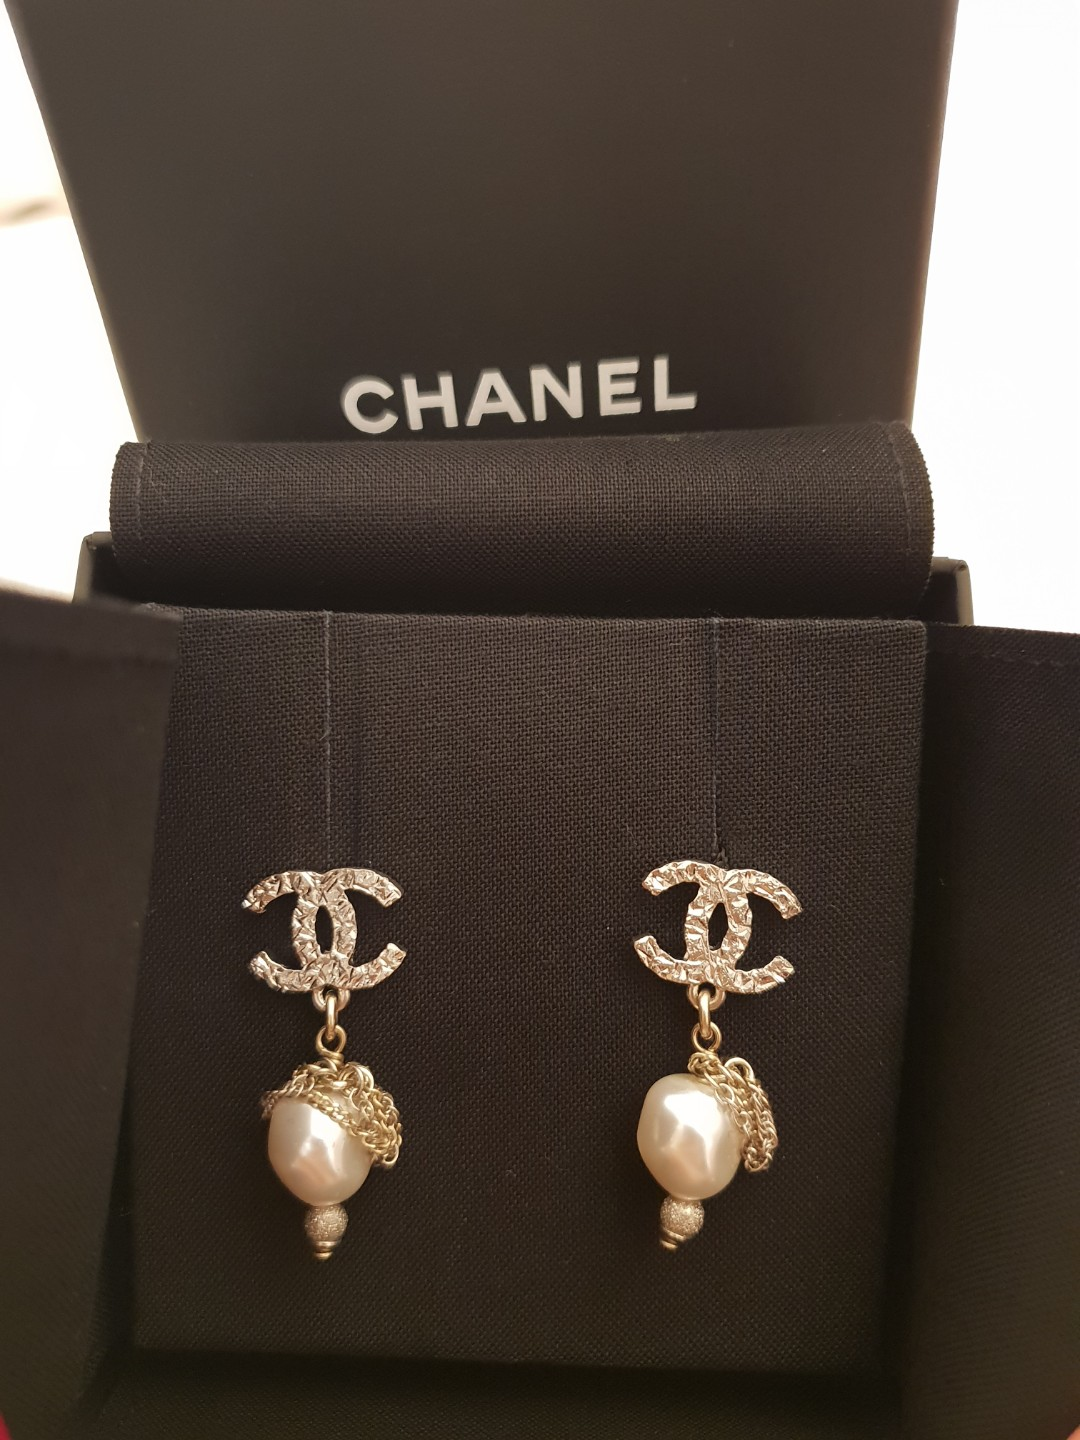 05b0690ae AUTHENTIC Brand New in box Chanel silver Double C with Dangling ...